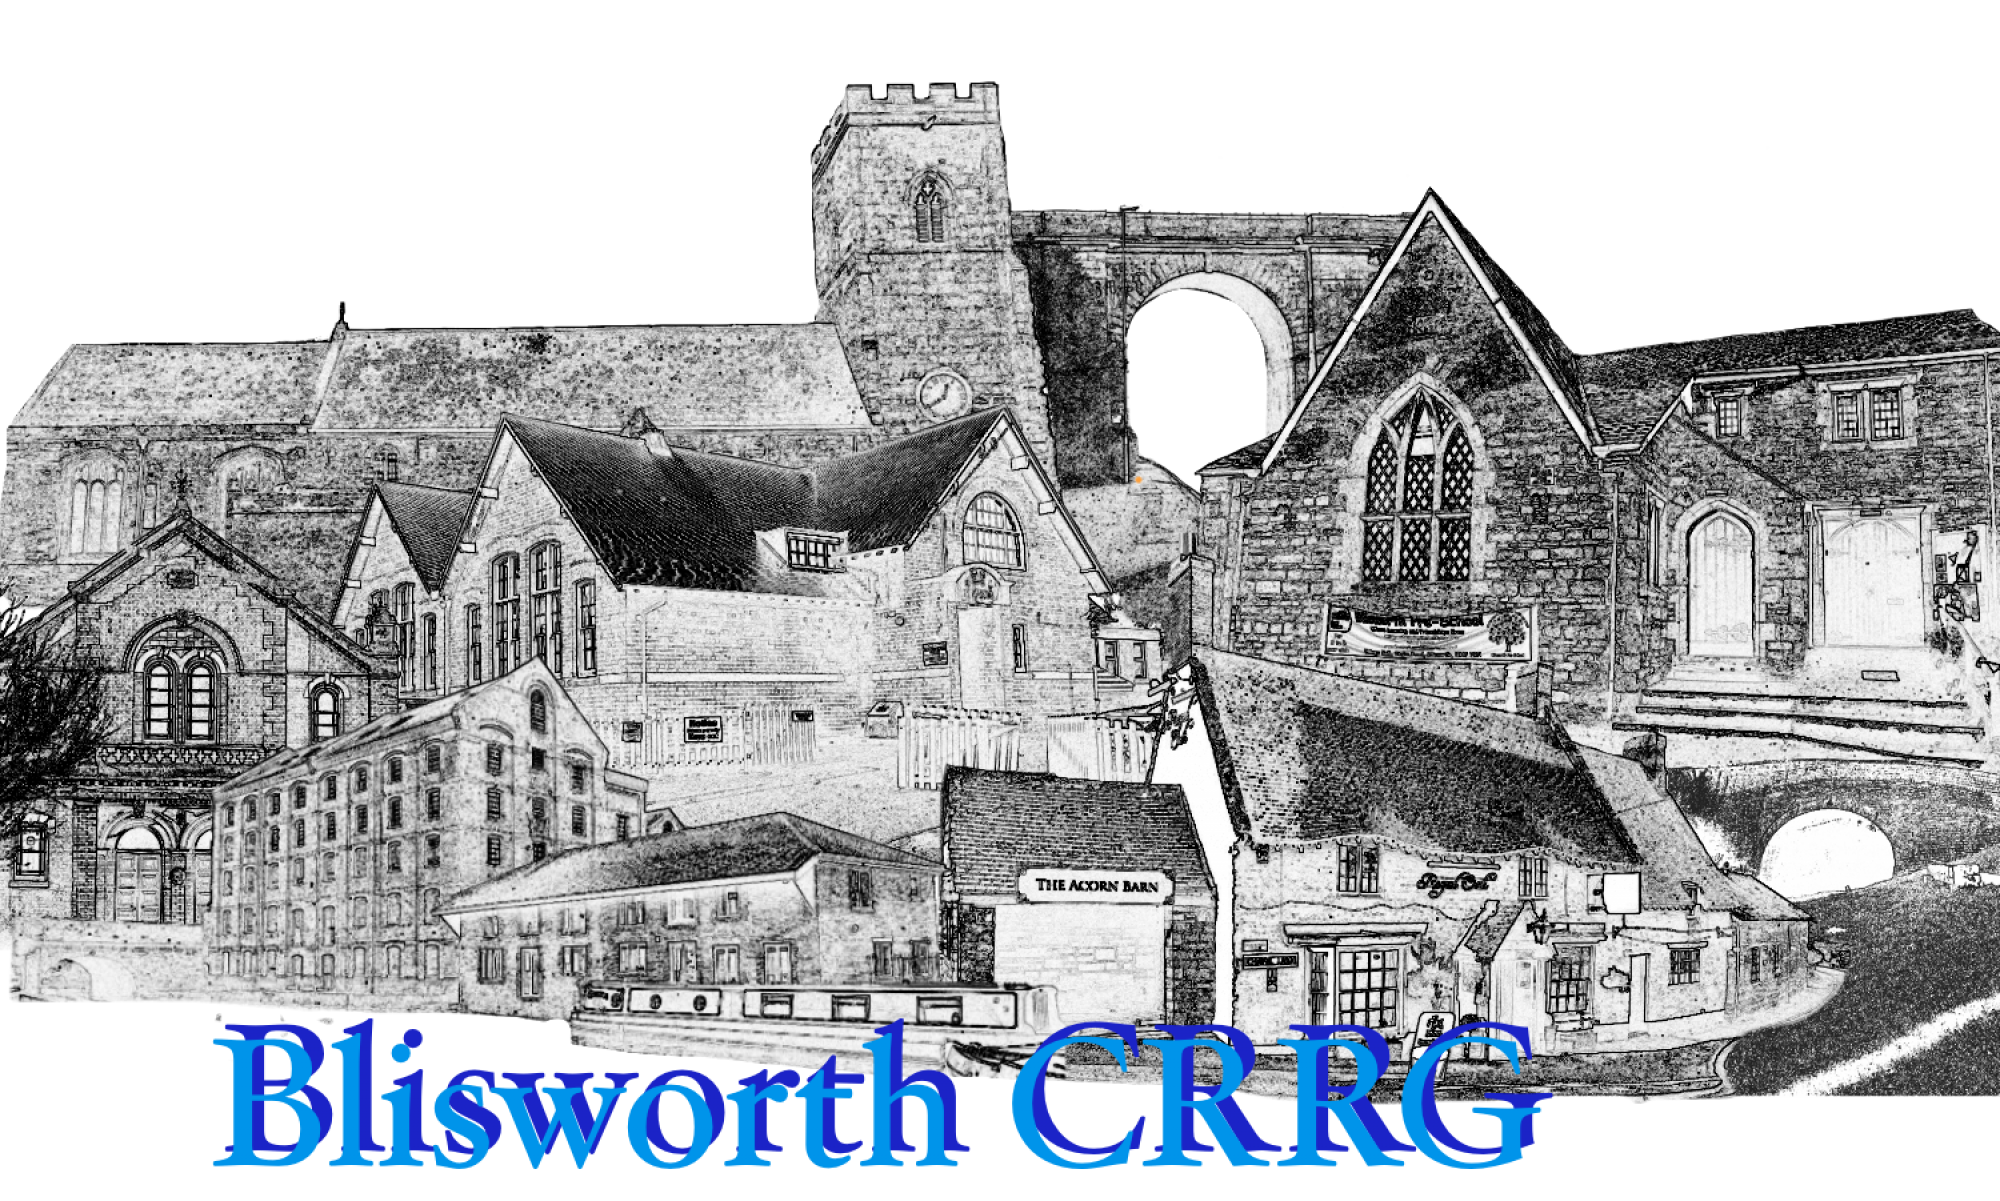 Blisworth CRRG